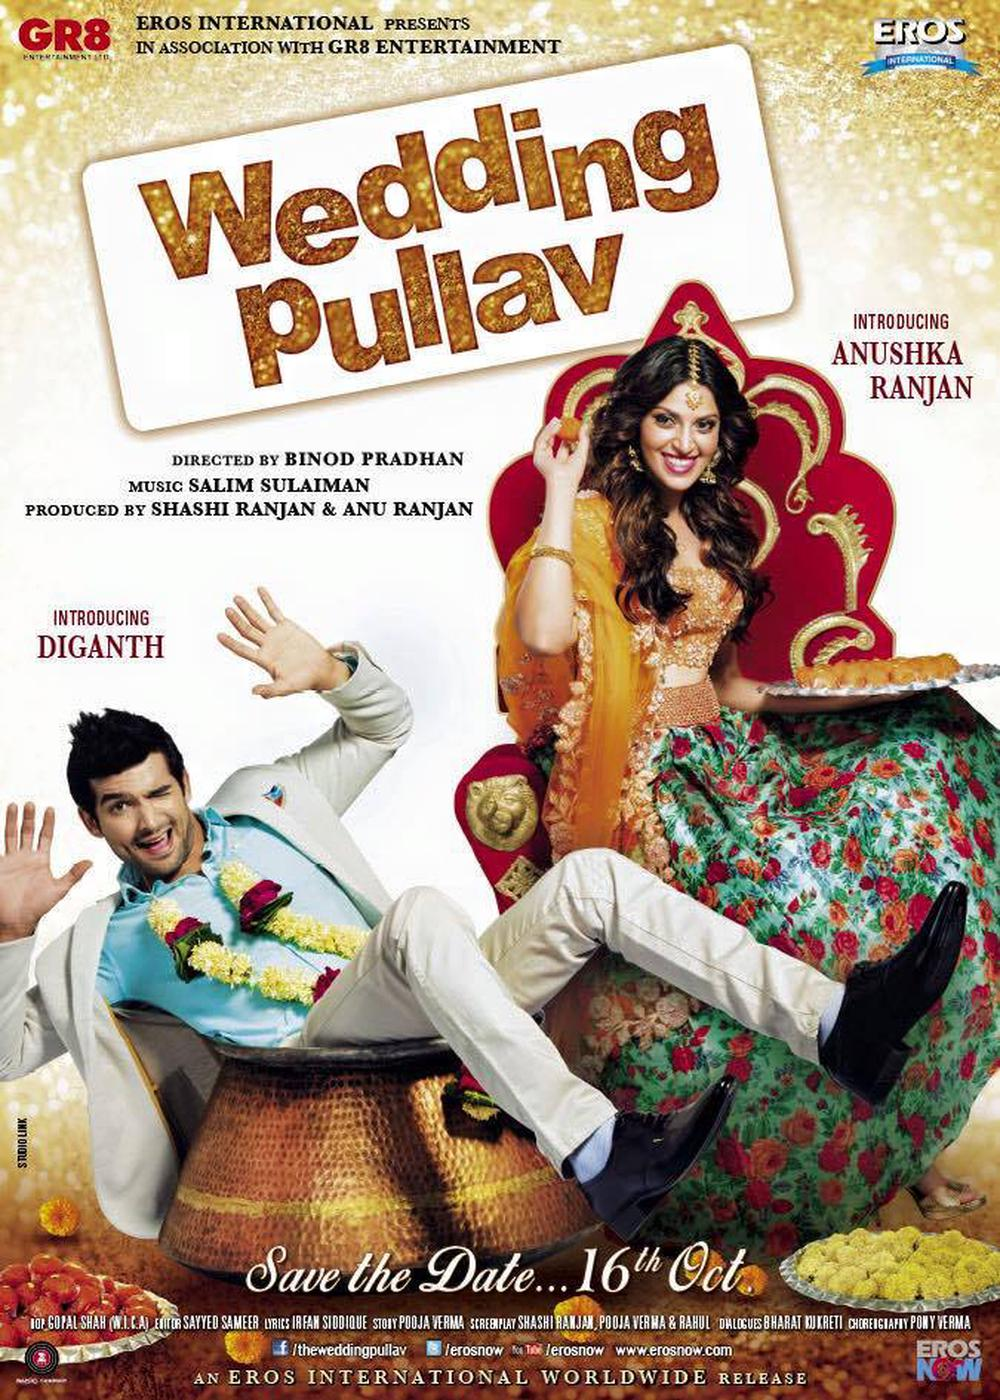 Wedding Pullav Movie Review Hindi